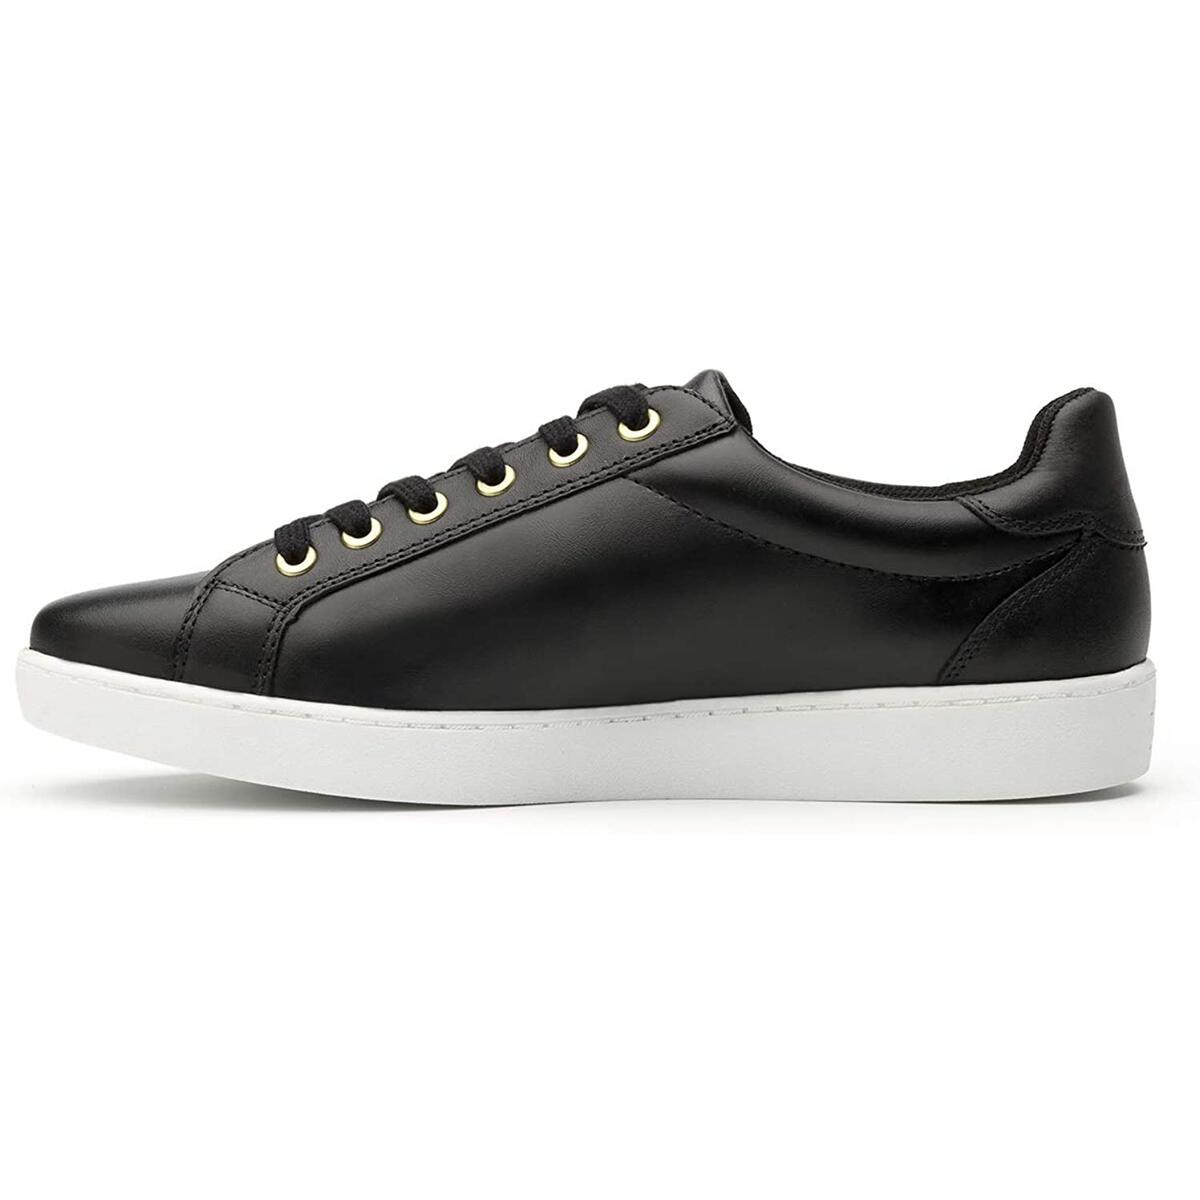 Flexi KINOA Women's Floral Sneaker Genuine Leather Casual Lace Up Shoe | 33513